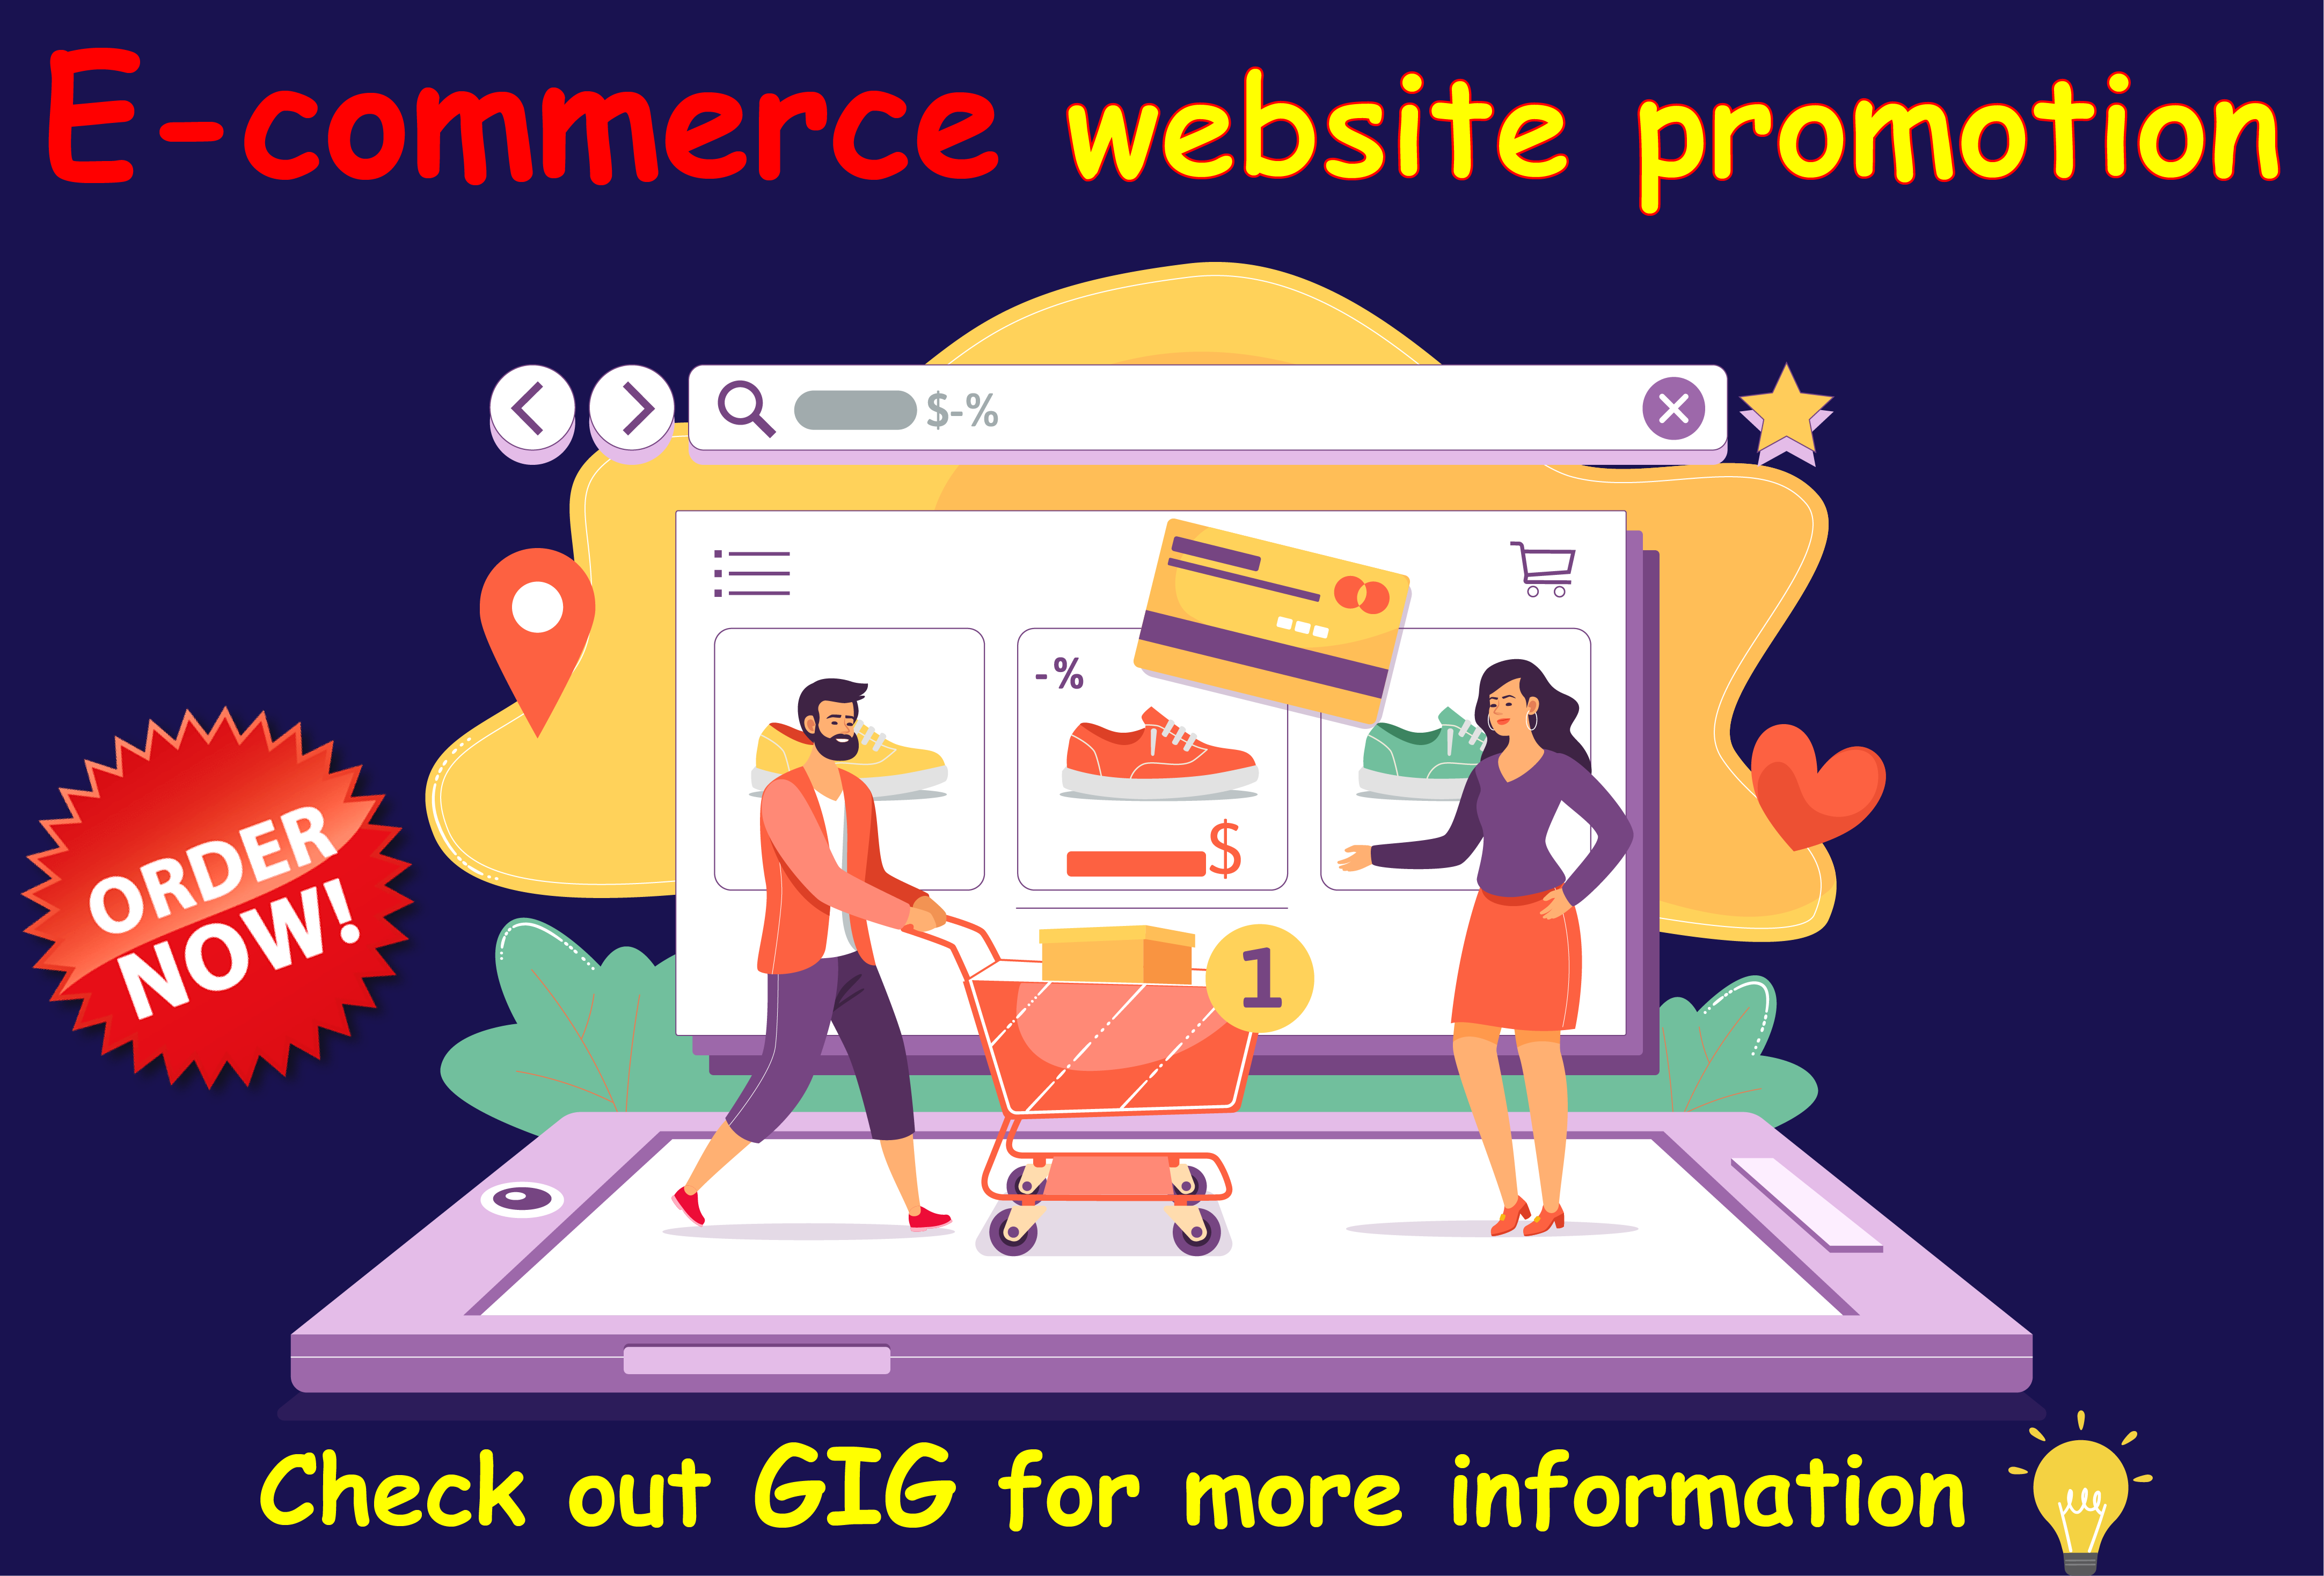 I will drive real traffic to promote your ebay,  etsy,  amazon,  shopify stores